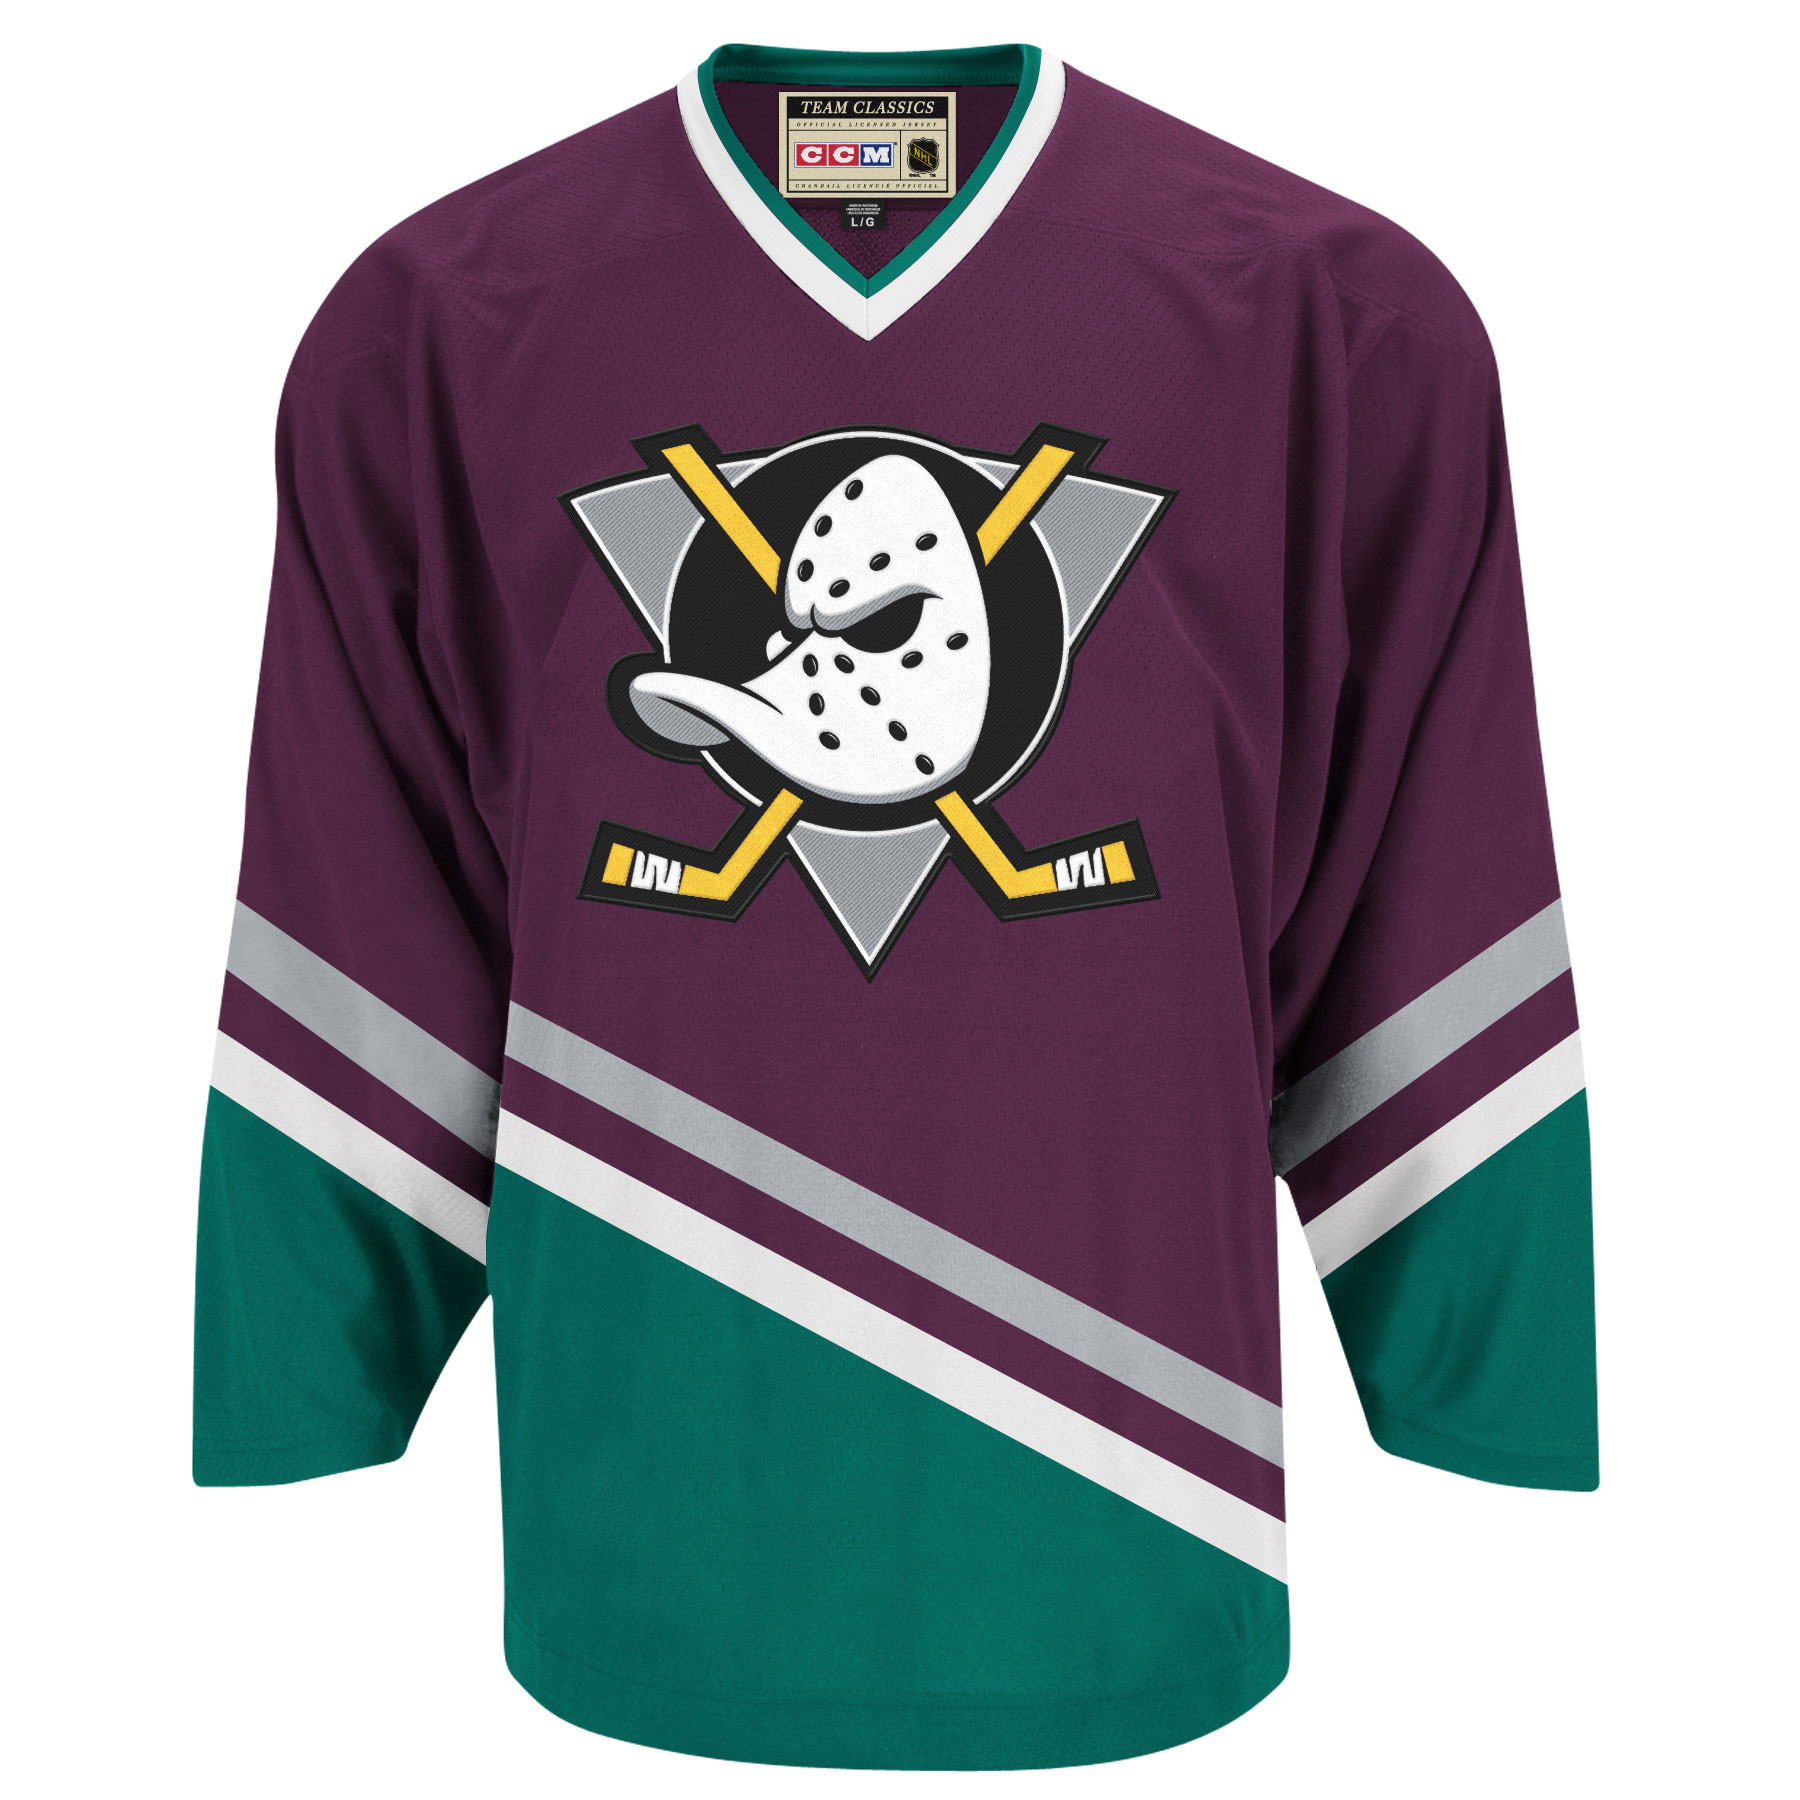 51f47ce01 There is one beautiful jersey we need to bring back QUACK QUACK QUACK